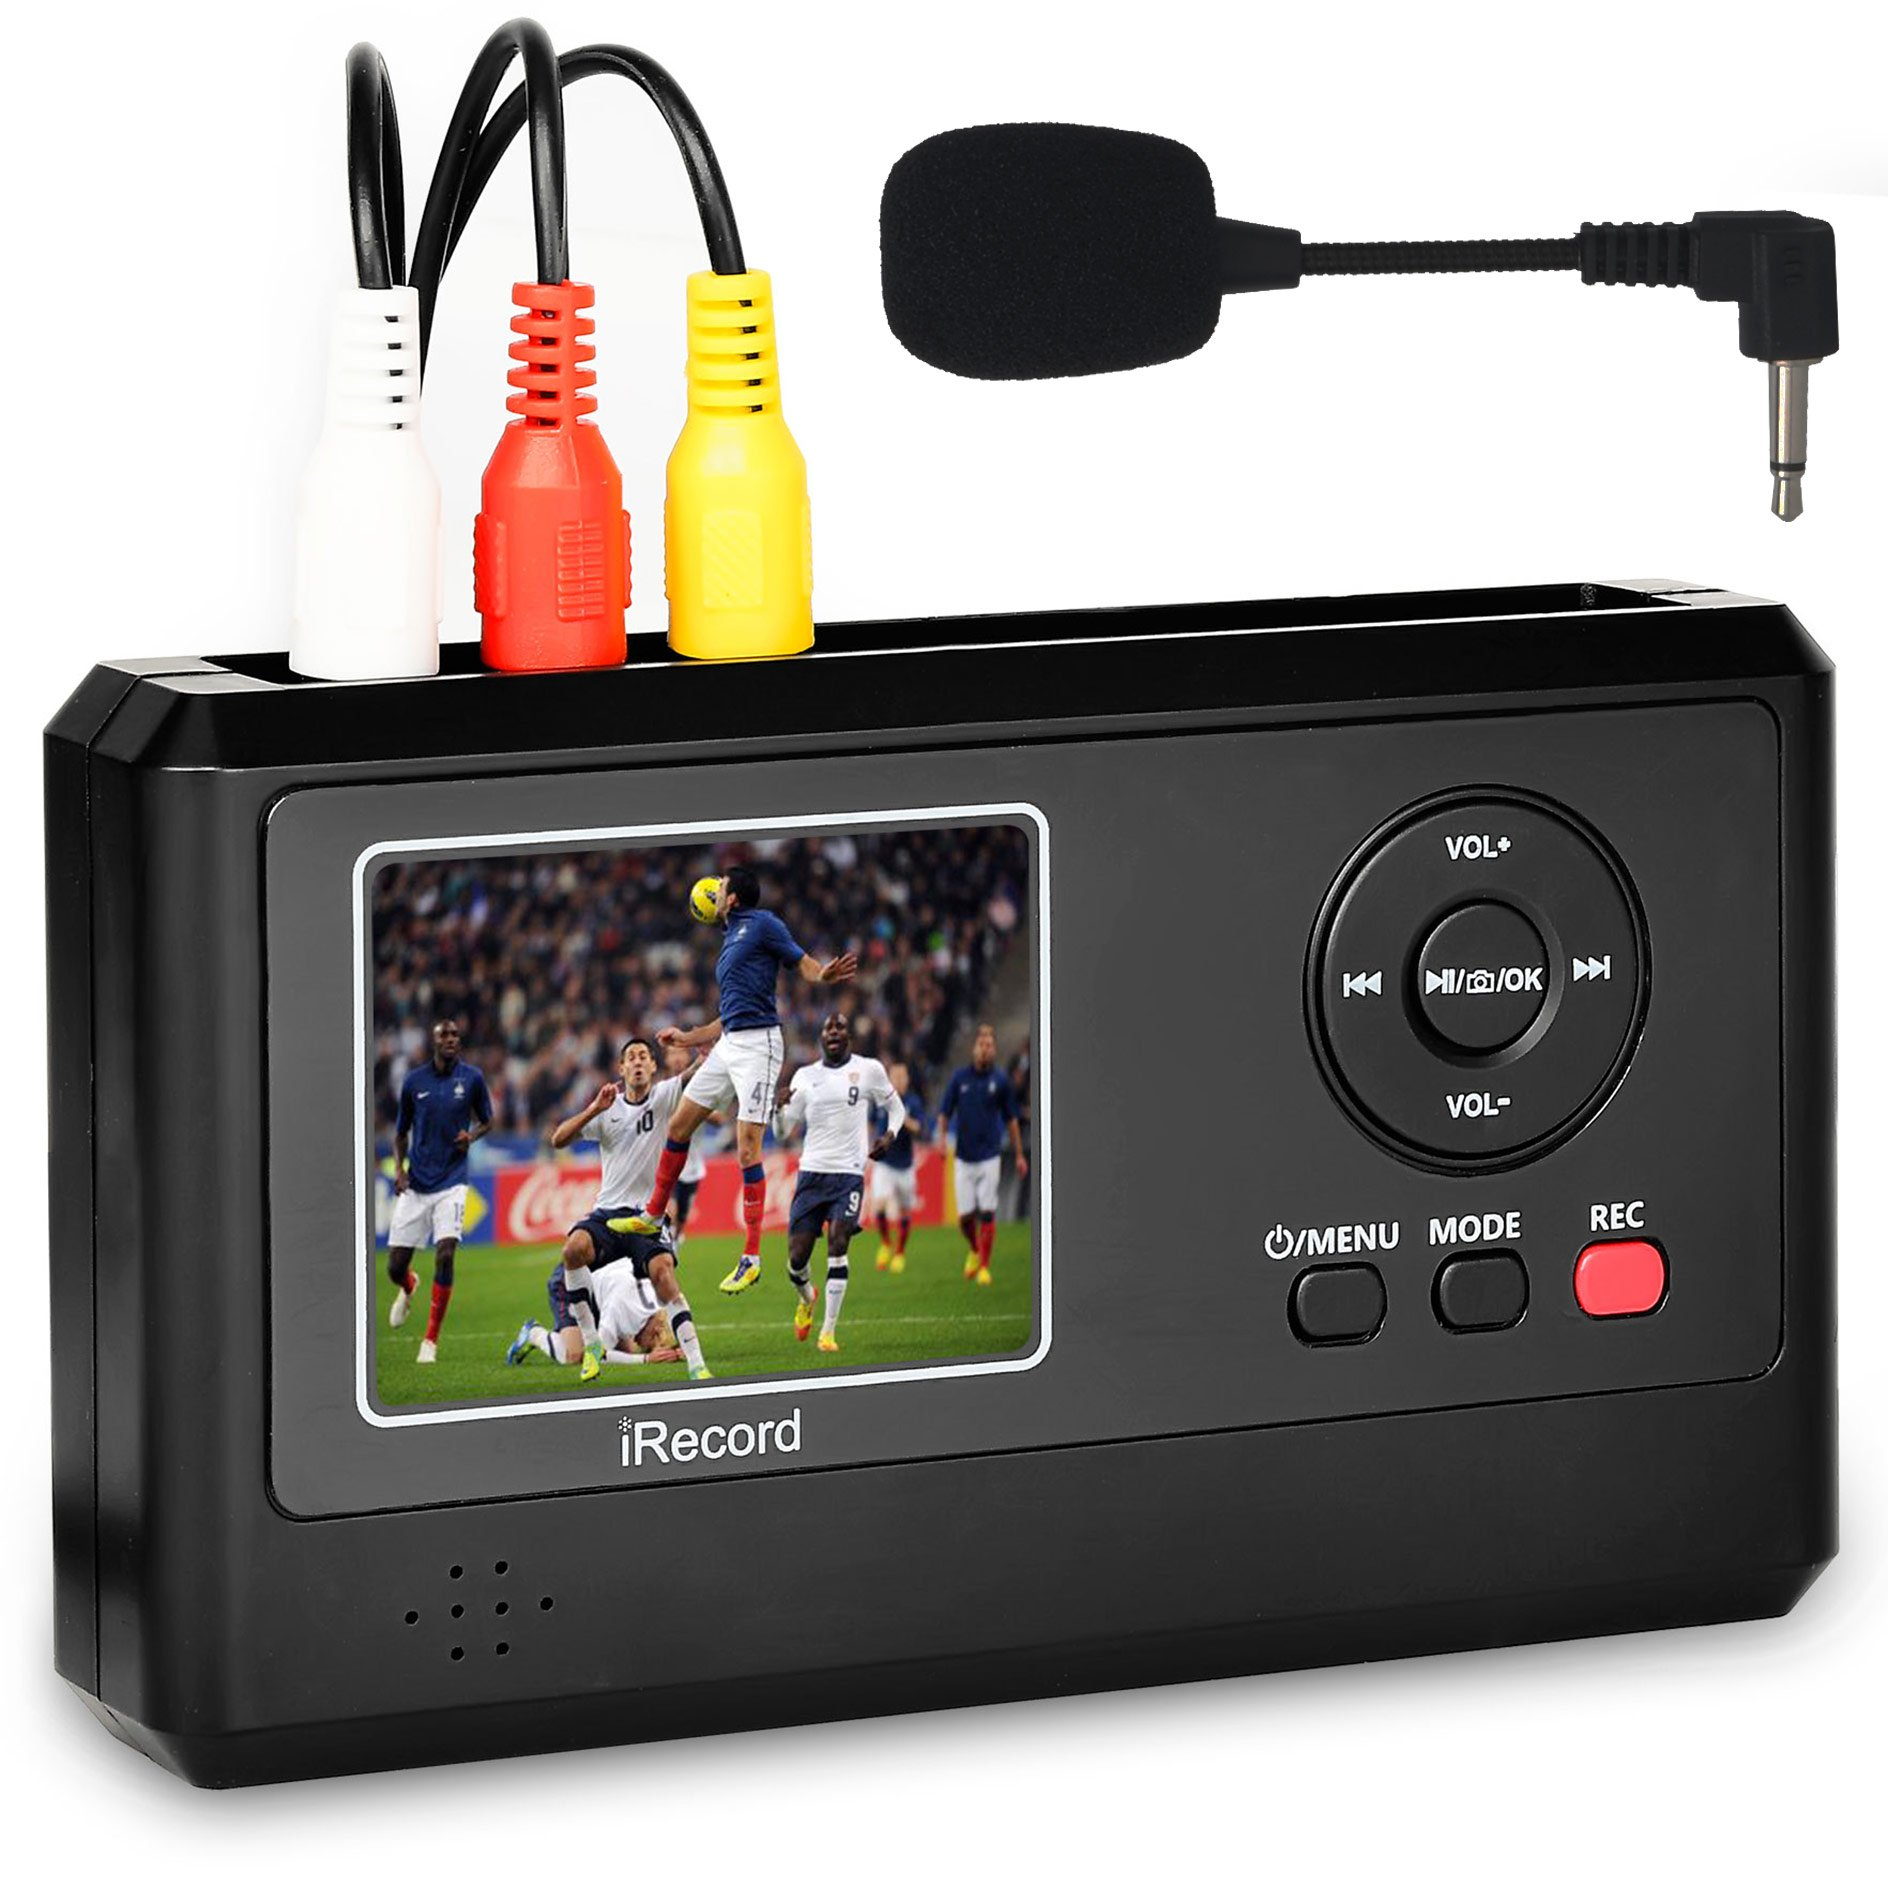 DIGITNOW Video Capture Box with Microphone, VHS to Digital DVD Converter from VCR Tapes Hi8 Camcorder TV Box and Gaming Systems,Save to TF Card Directly by DIGITNOW